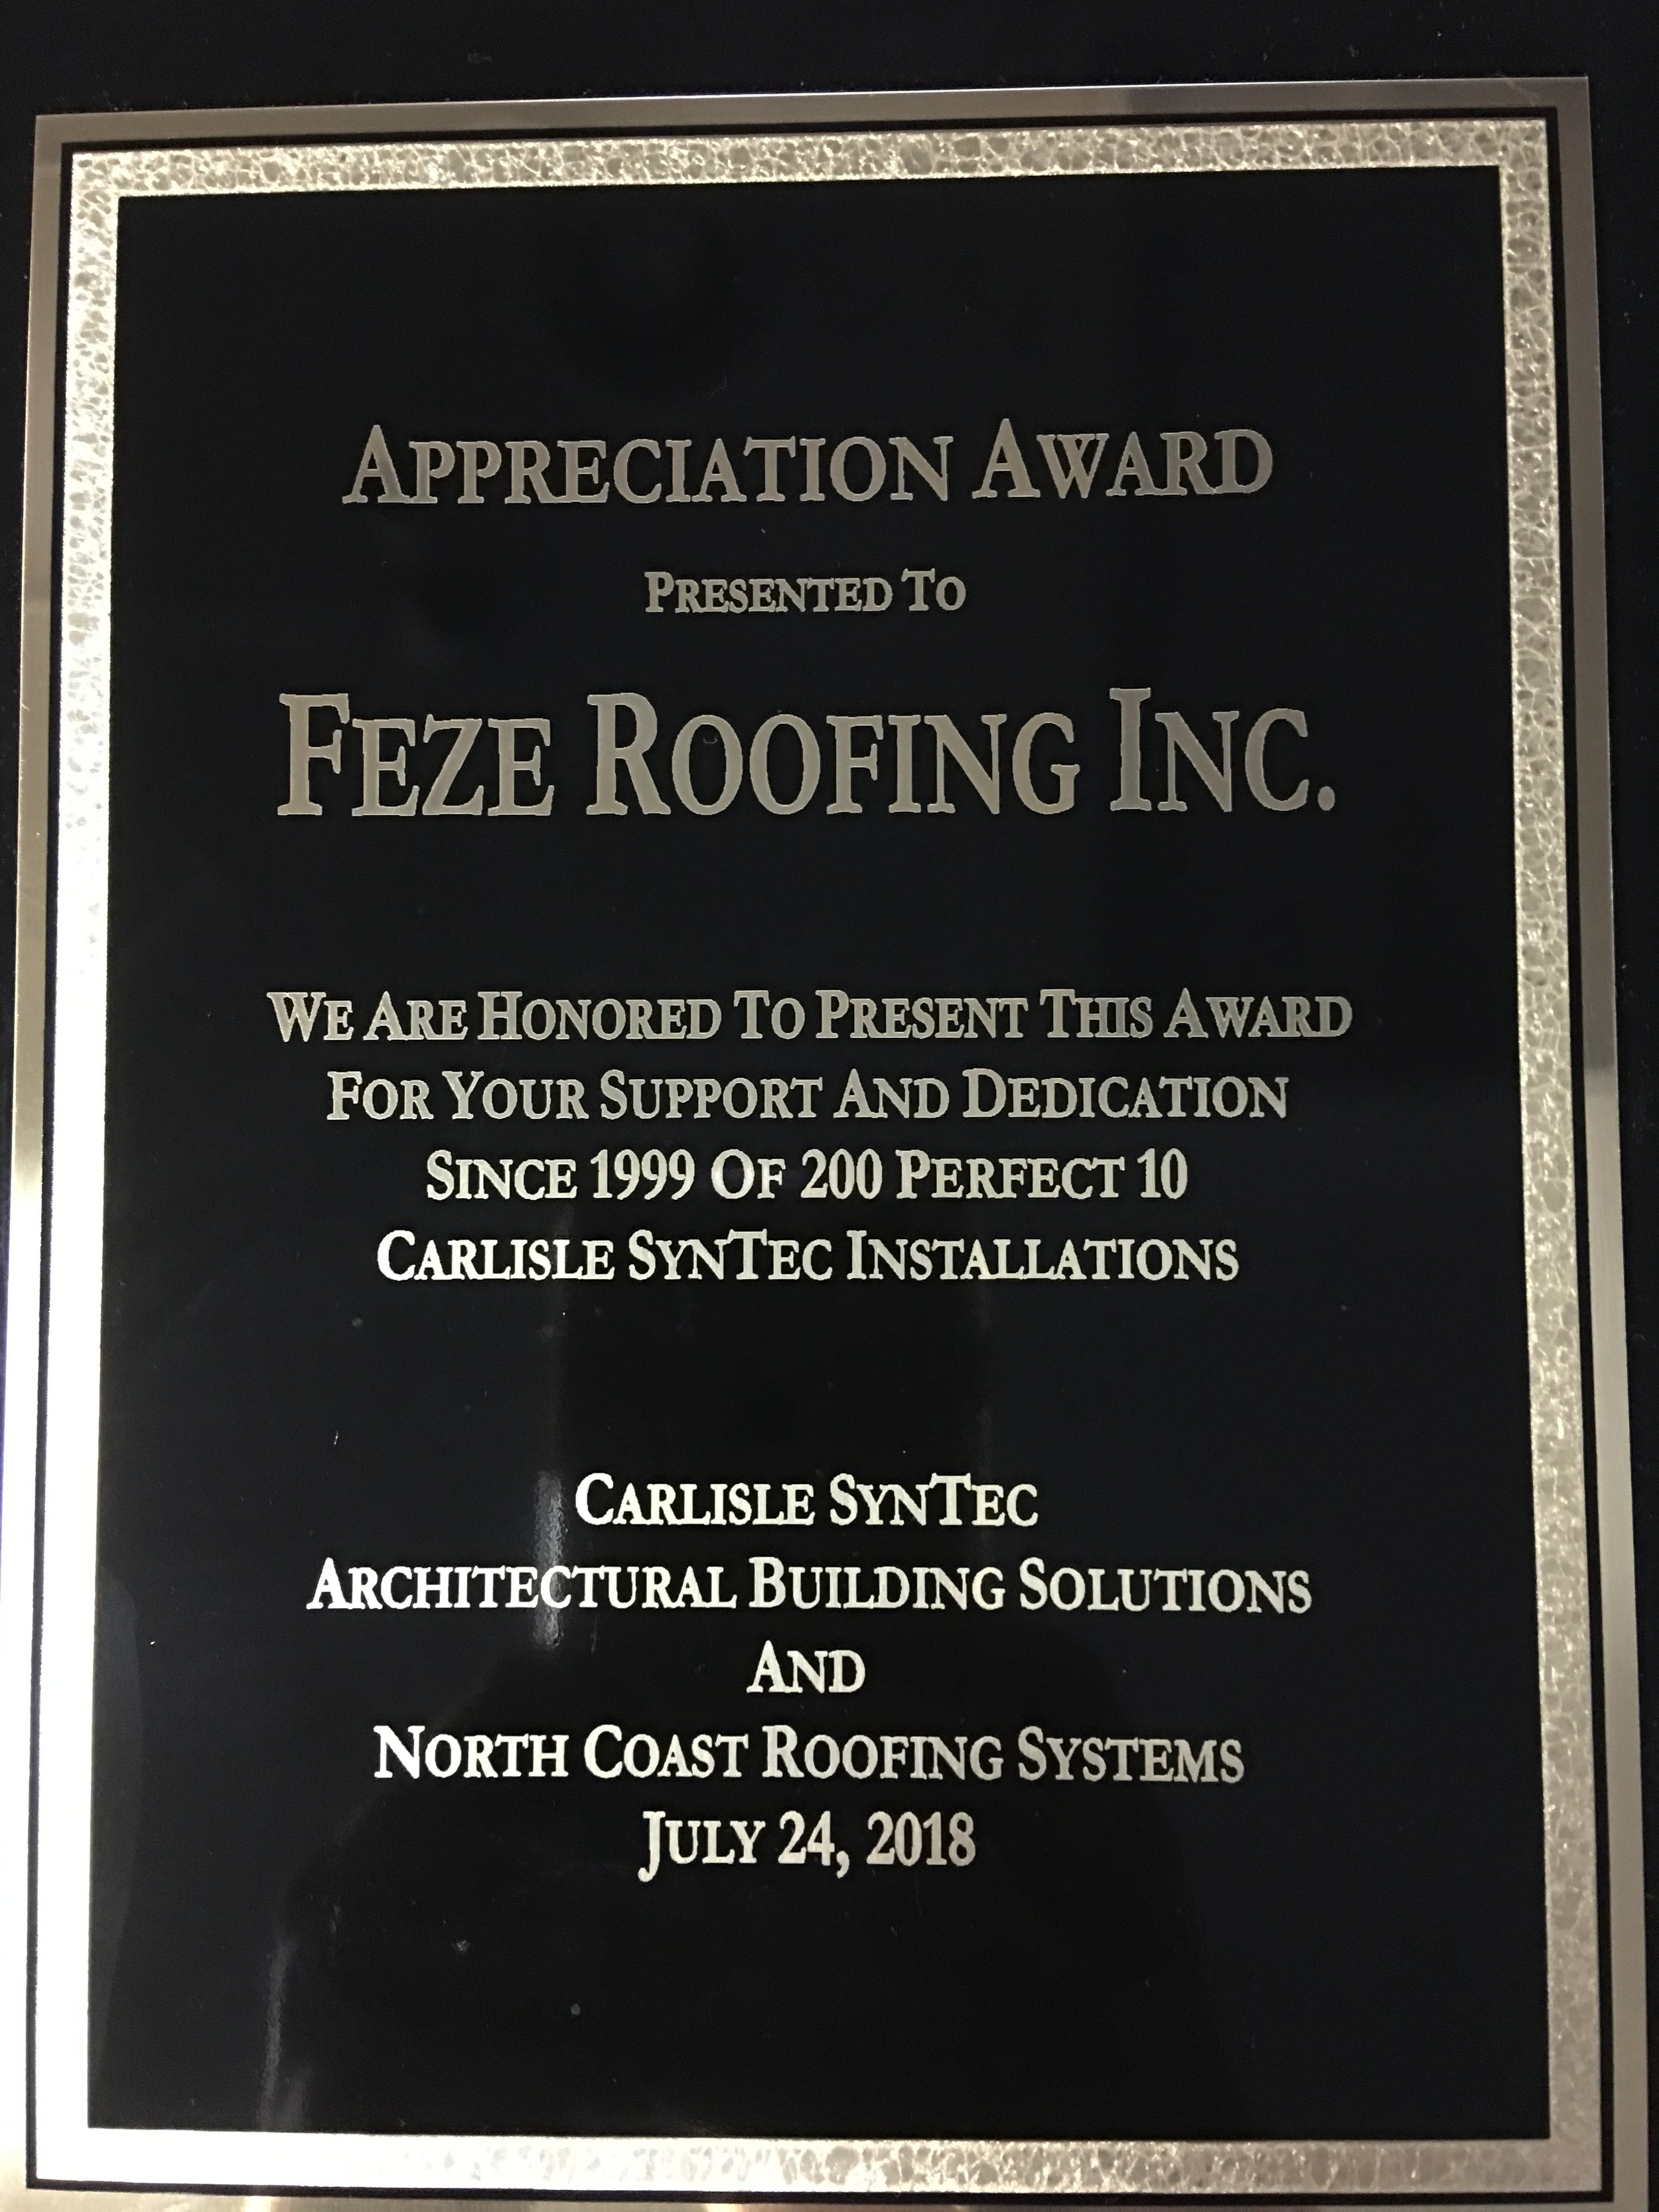 Feze Roofing Awarded Carlisle SynTec Honor - Feze Roofing, Inc.© is pleased and grateful to announce that we have been recognized by Carlisle SynTec, Architectural Building Solutions, and North Coast Roofing Systems for installing 200 perfect 10 Carlisle SynTec roofing installations since 1990.